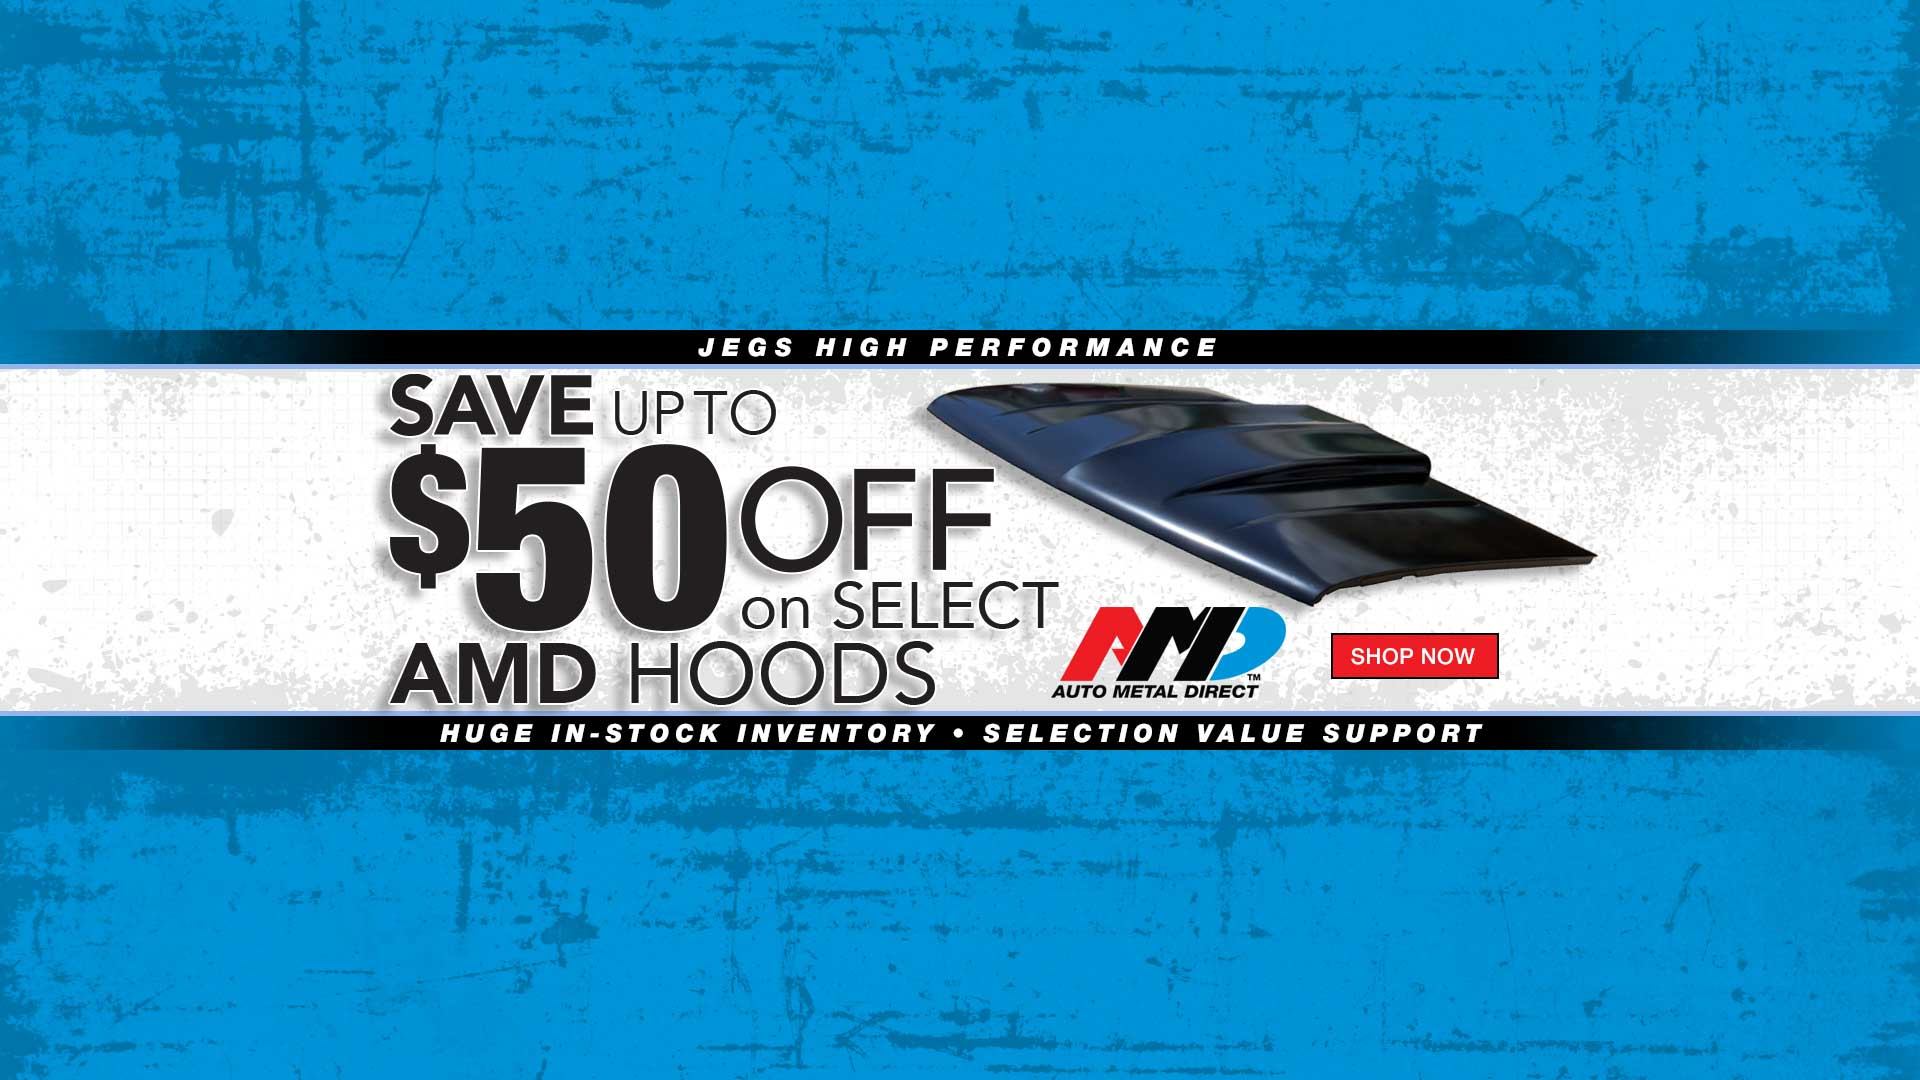 Up to $50 off AMD Hoods